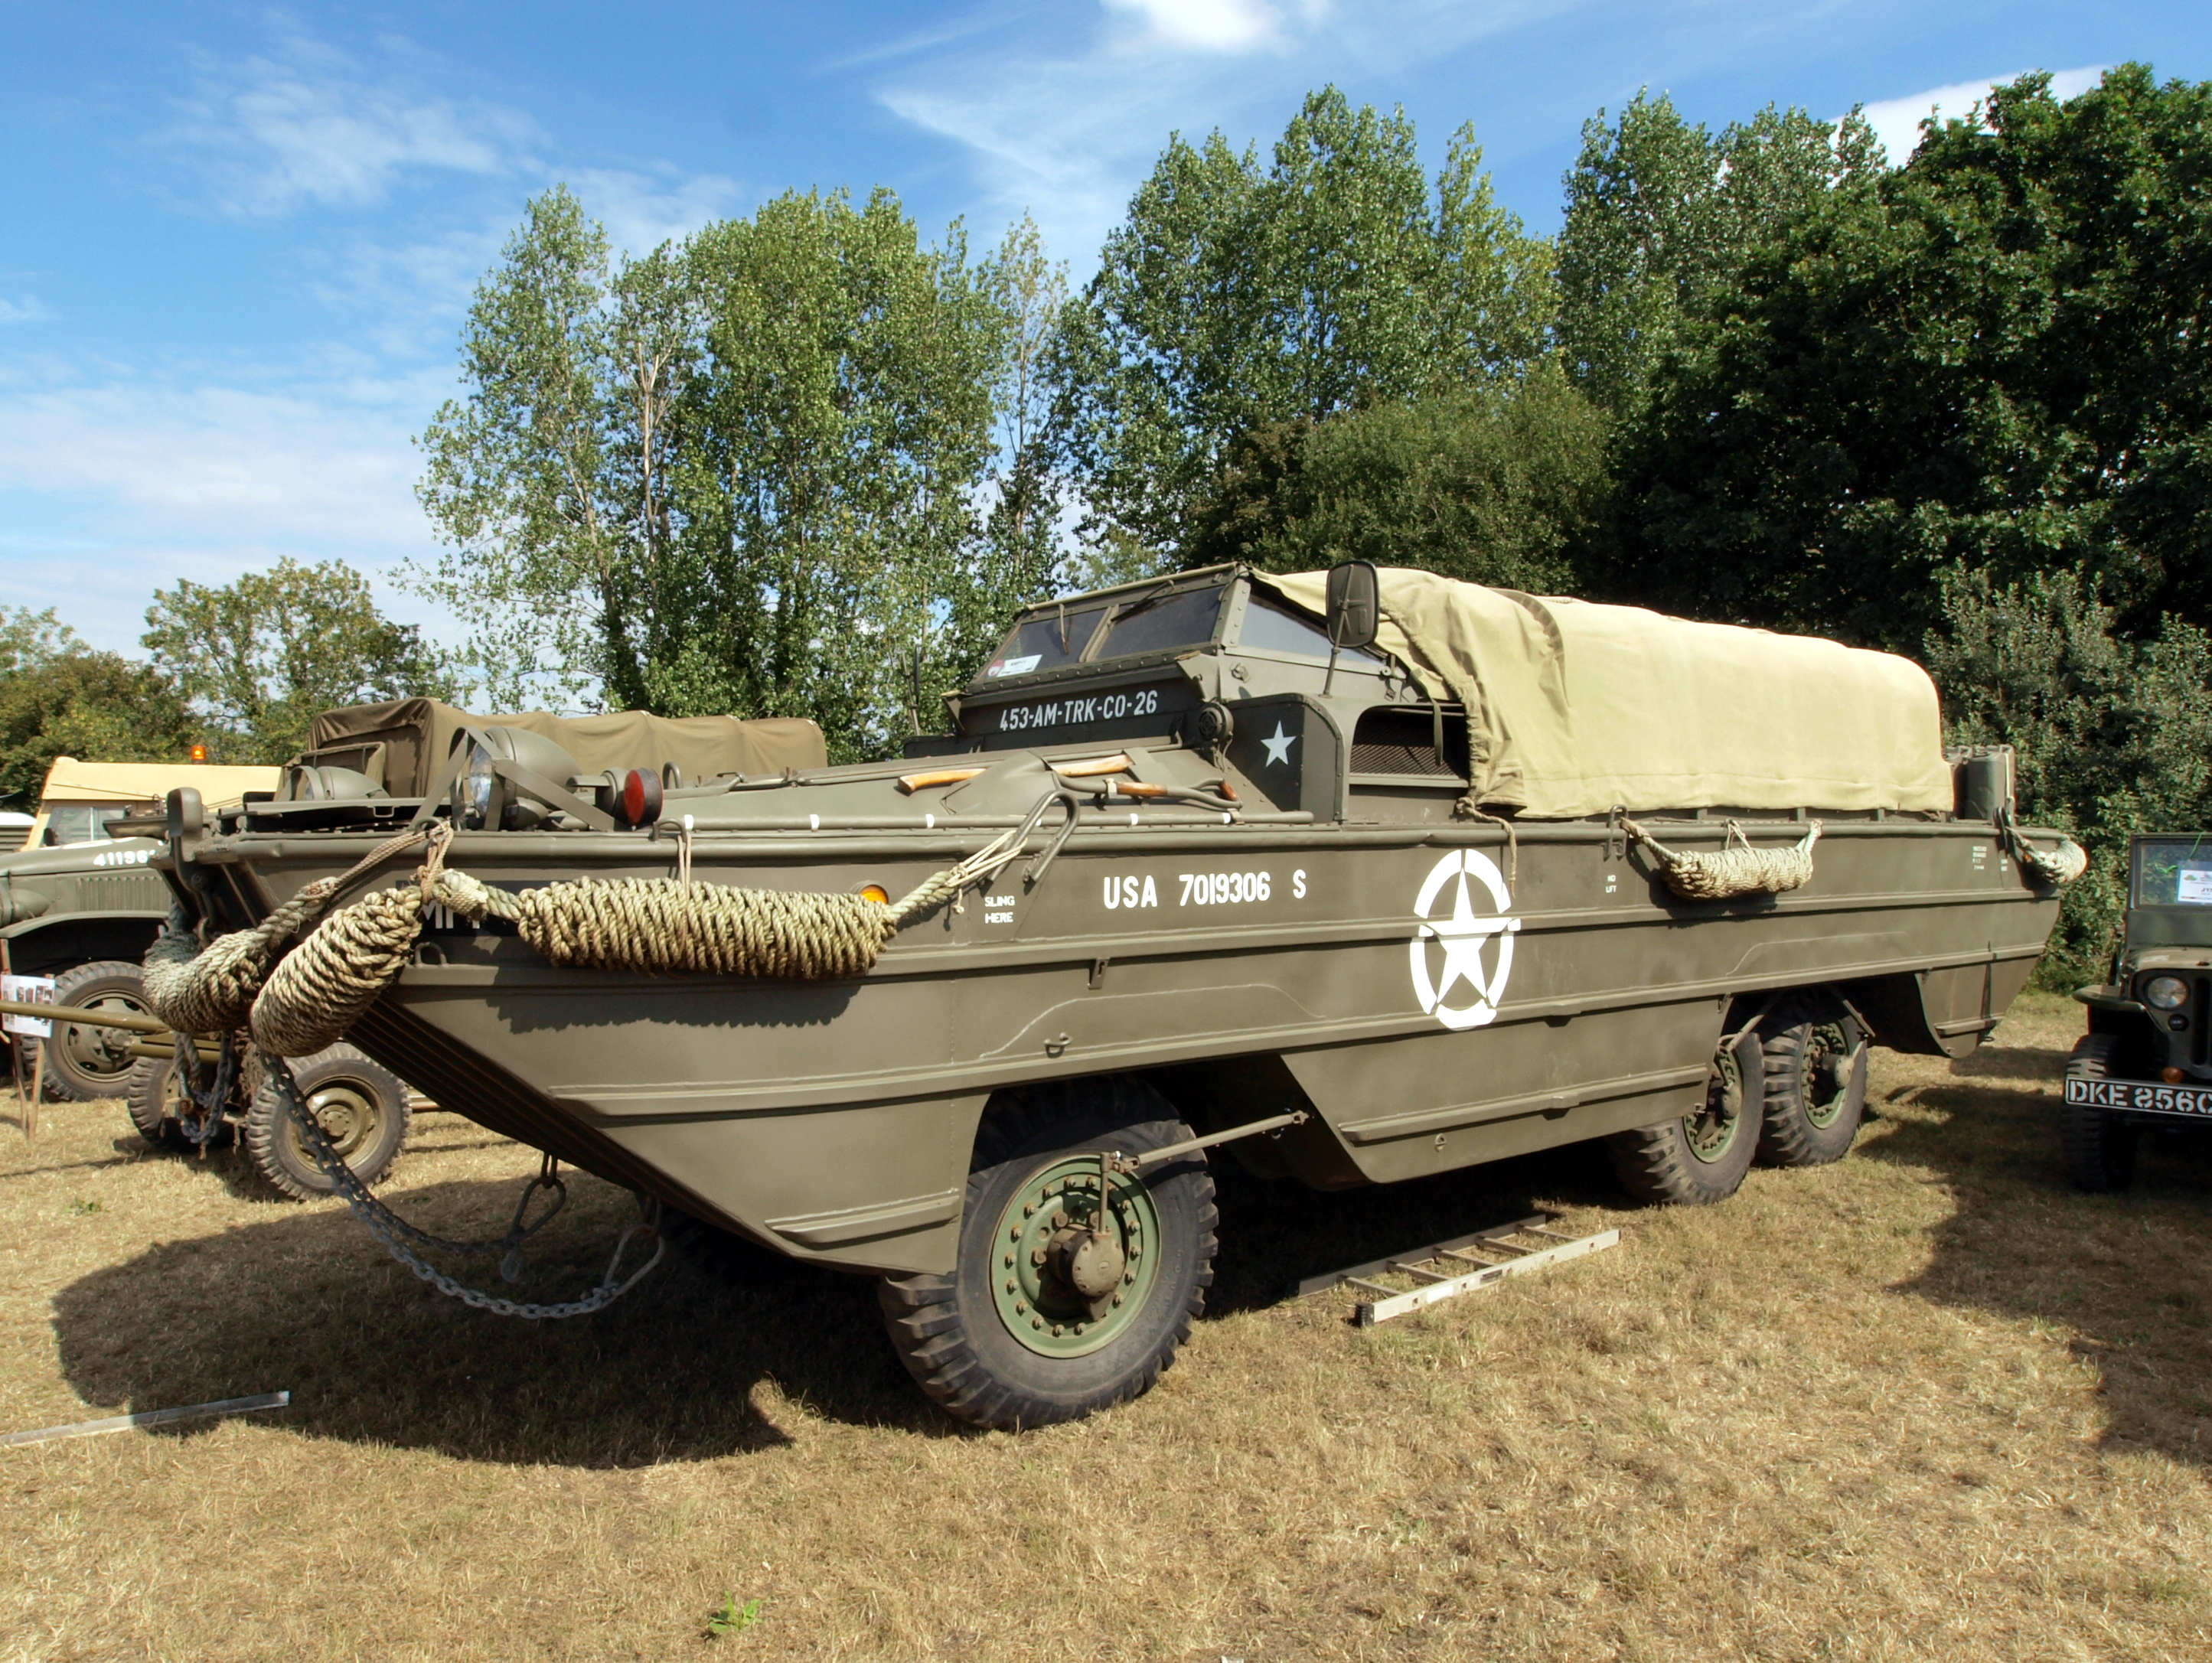 File Gmc Dukw 353 6x6 Usa 7019306 S 453 Am Trk Co 26